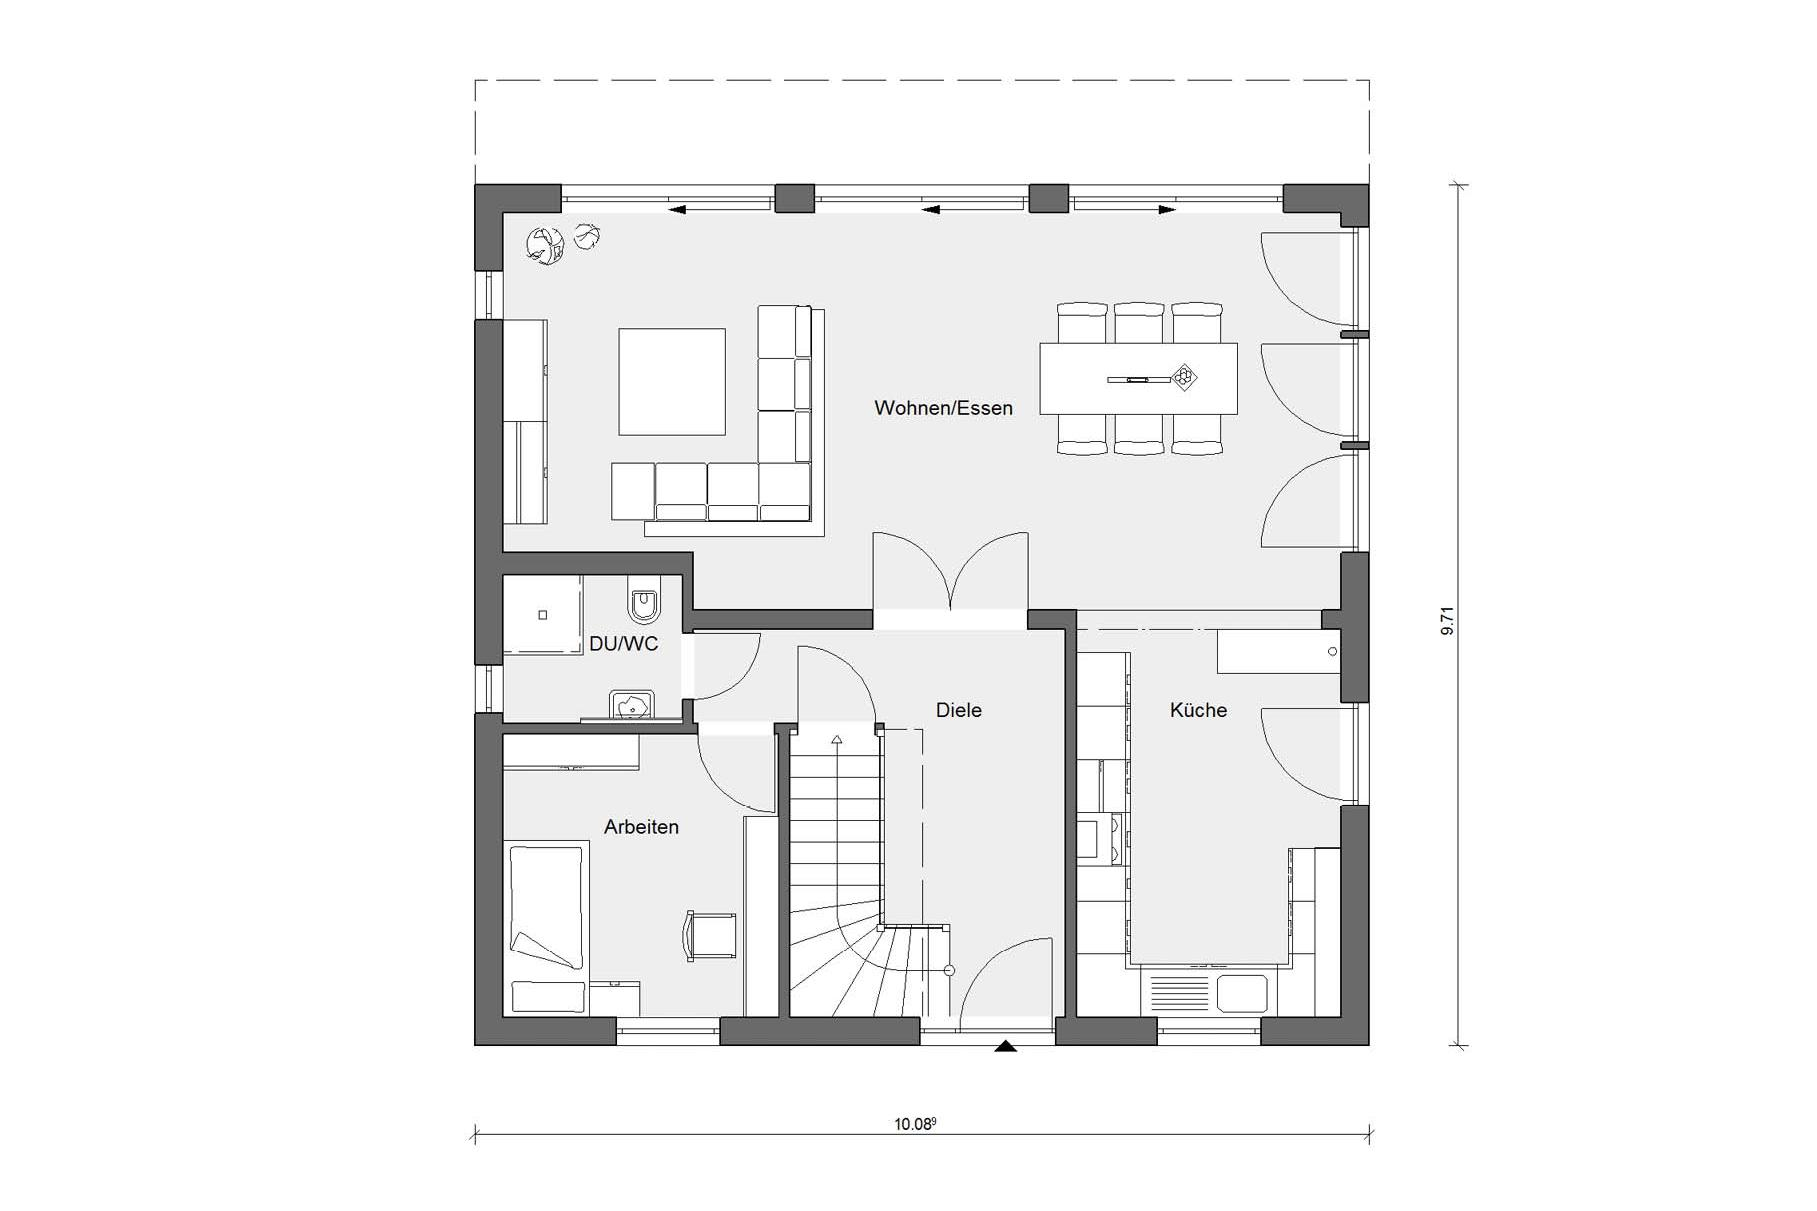 Floor plan ground floor house square E 15-159.2